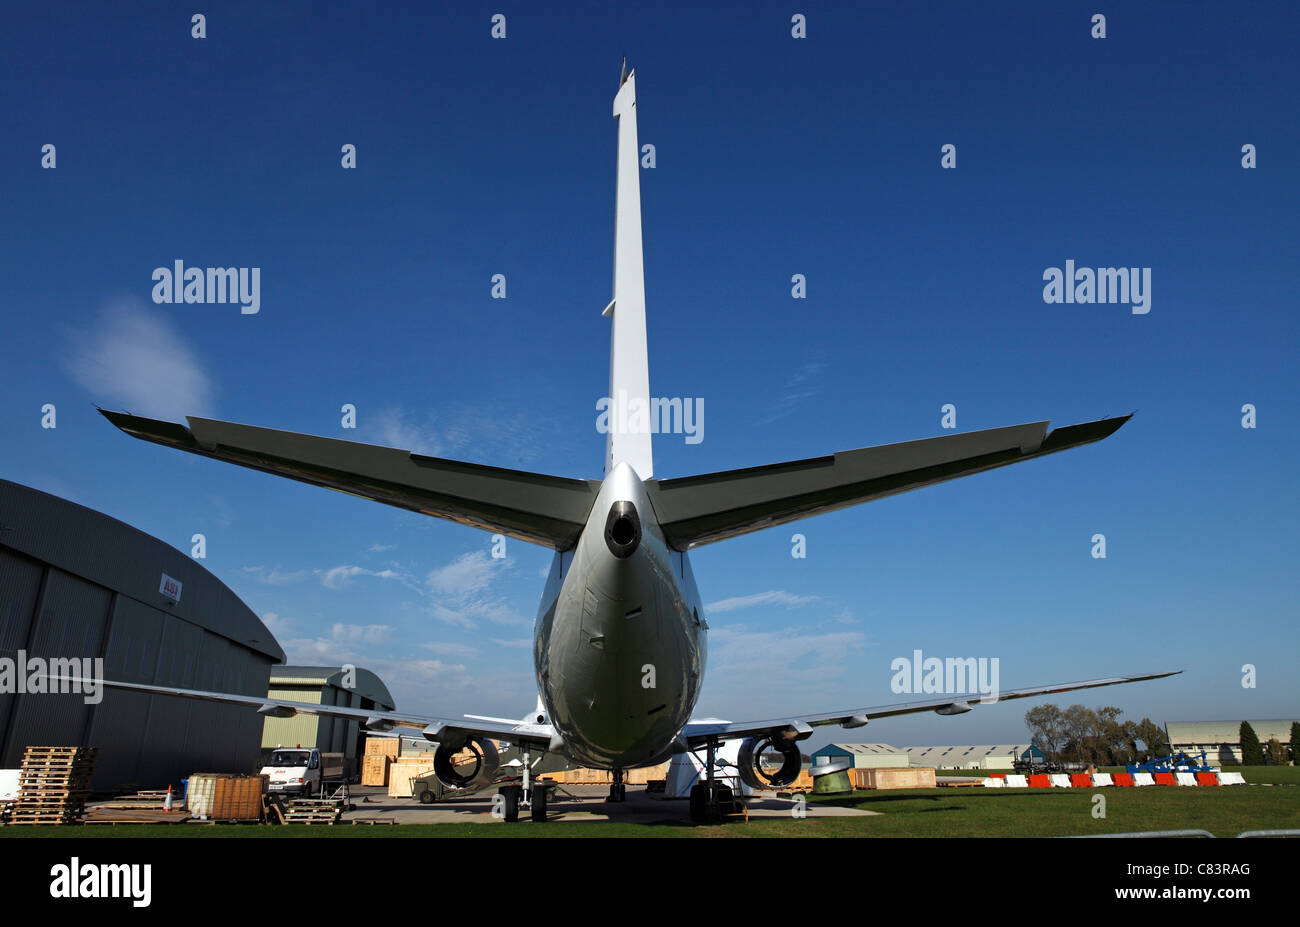 Aeroplane being scrapped and dismantled for parts - Stock Image